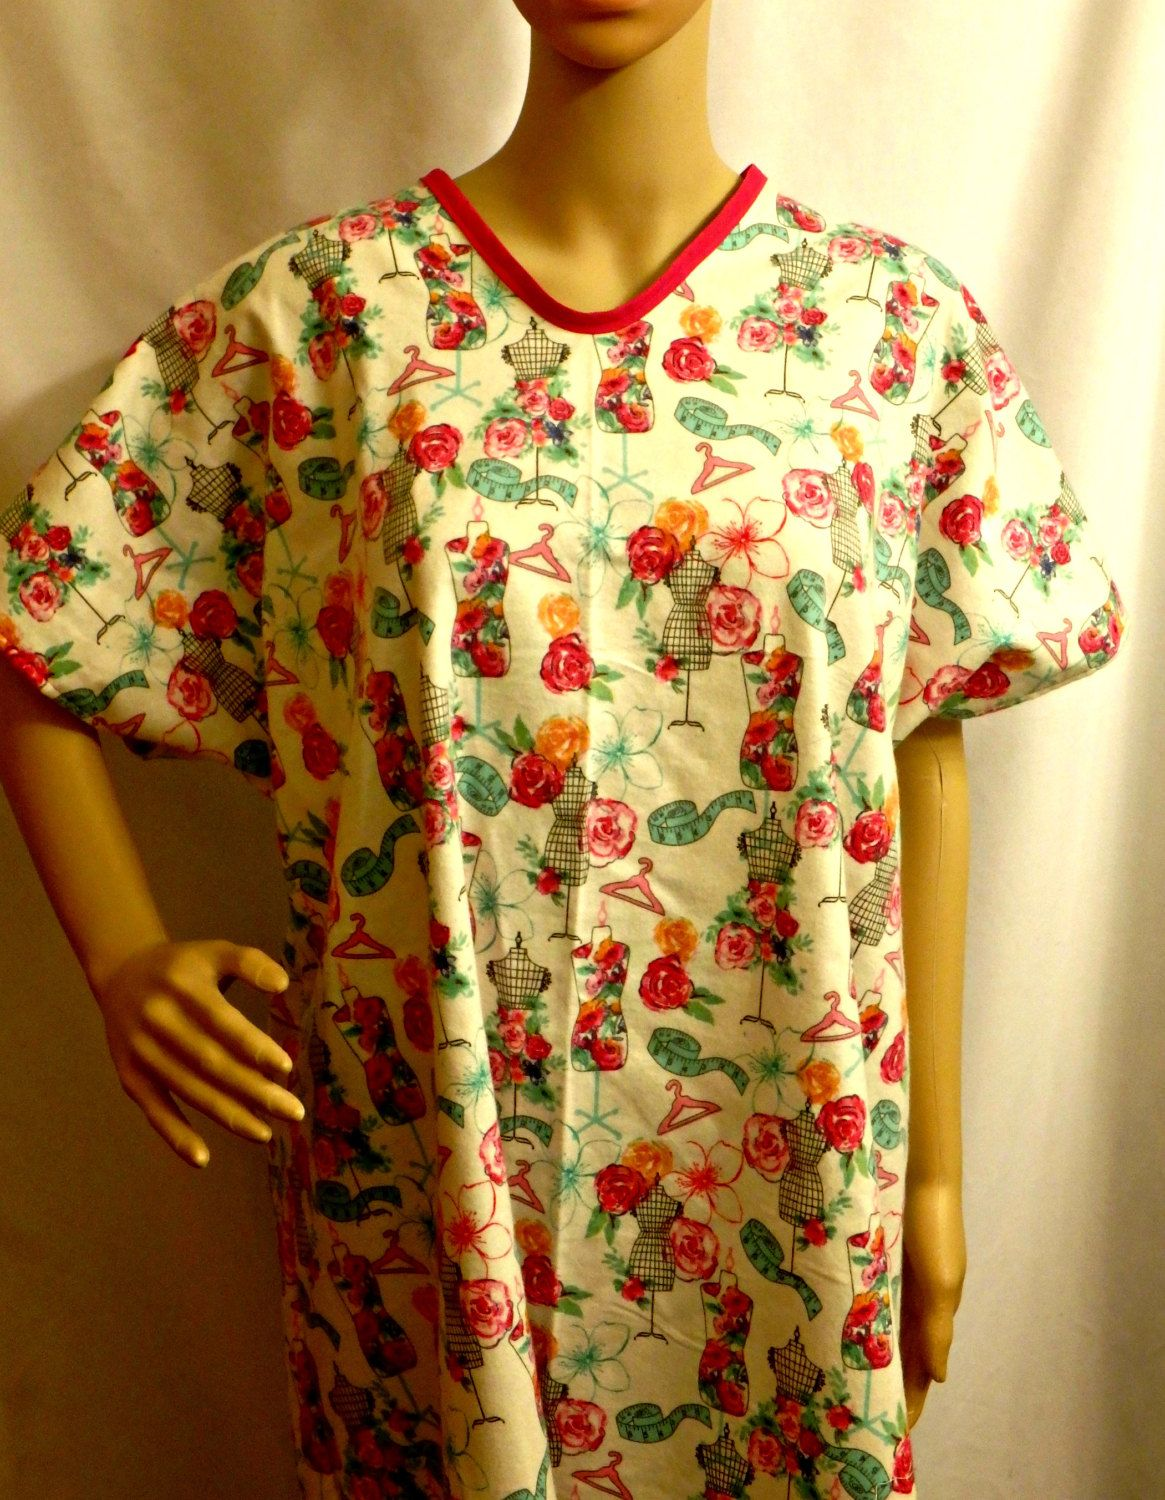 Flannel Hospital Gown IV for Bed bound Fits up to Plus Size FLORAL ...